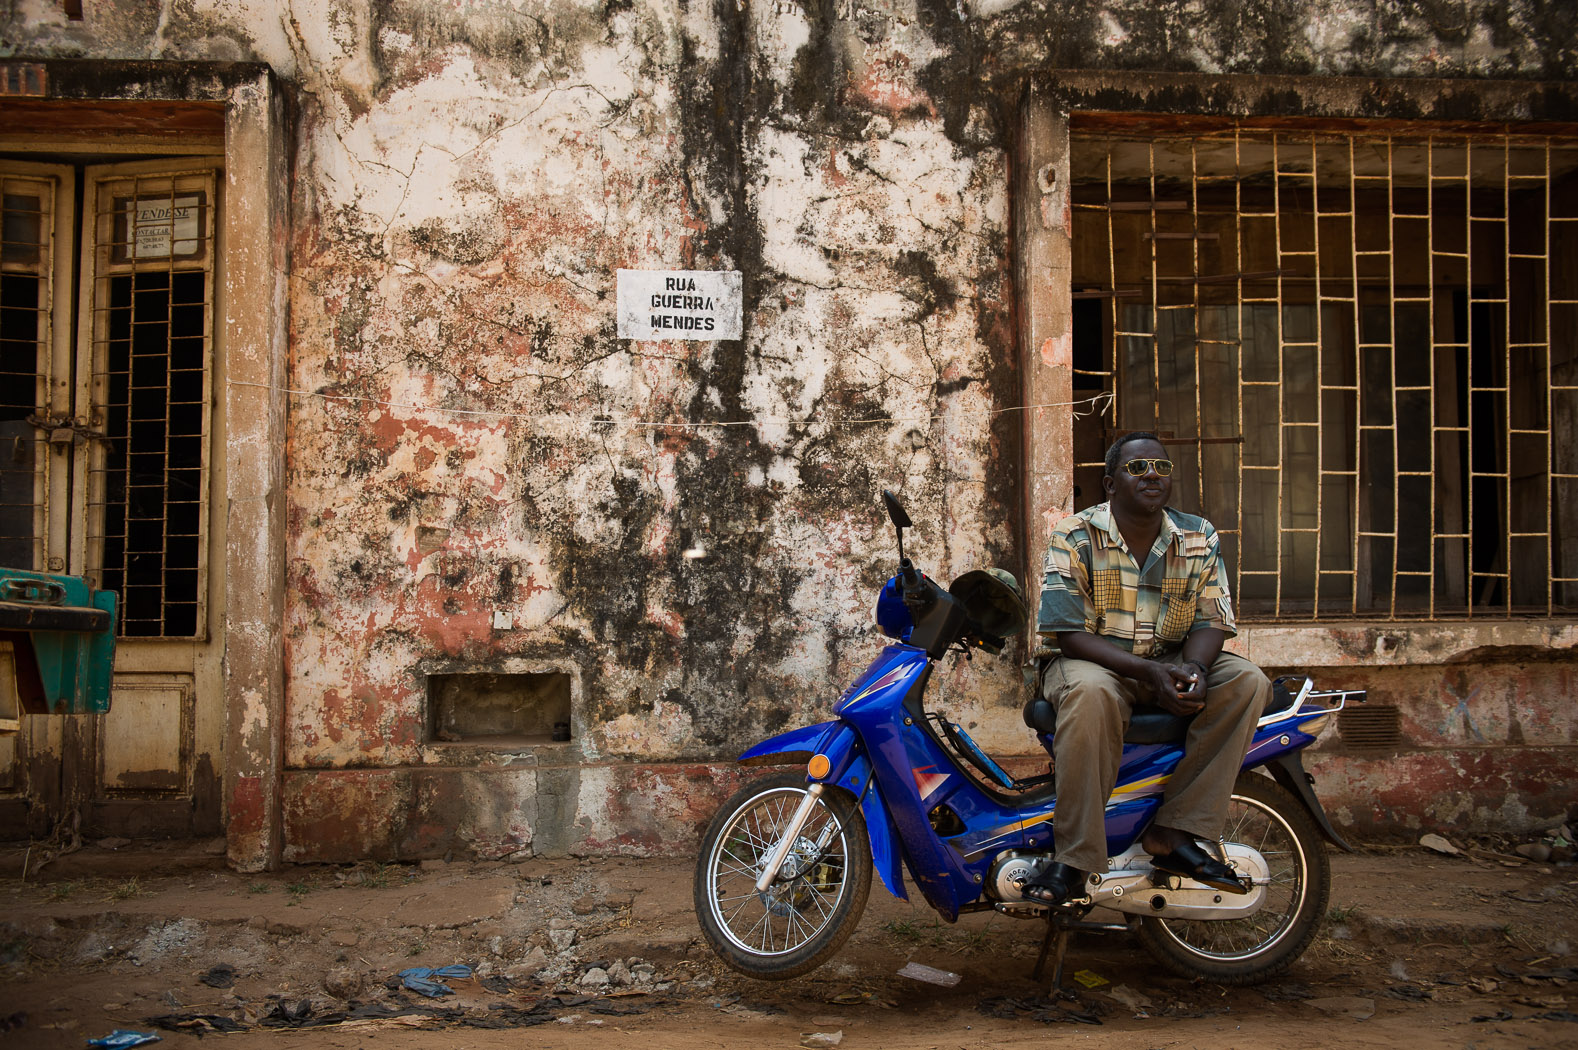 Much of the capital, Bissau, is crumbling, with little investment and few opportunities.